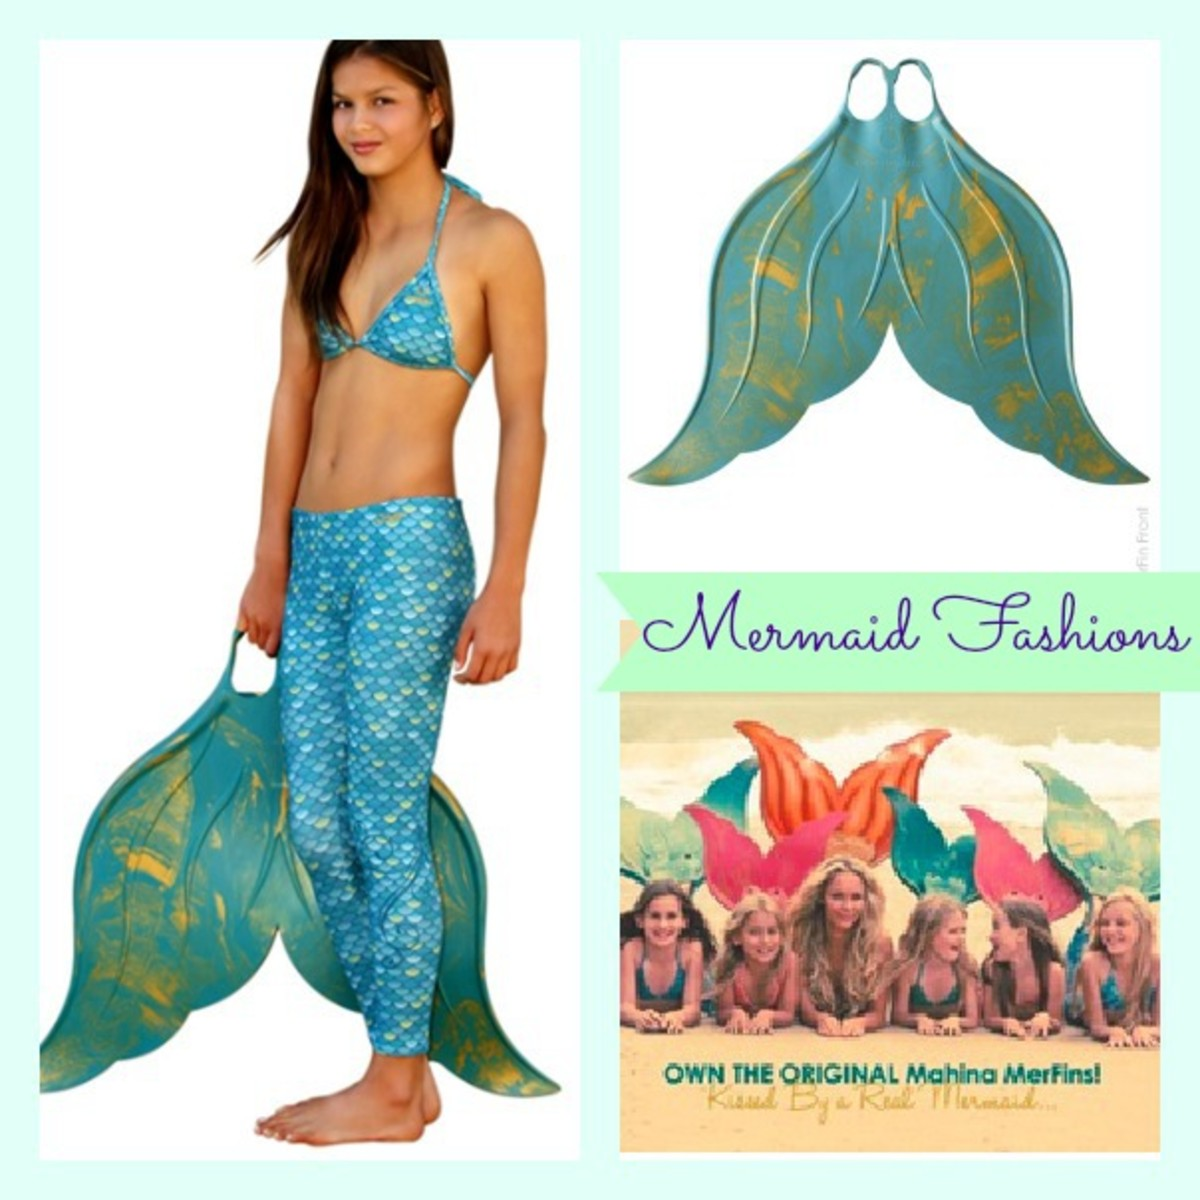 mermaid_fashions